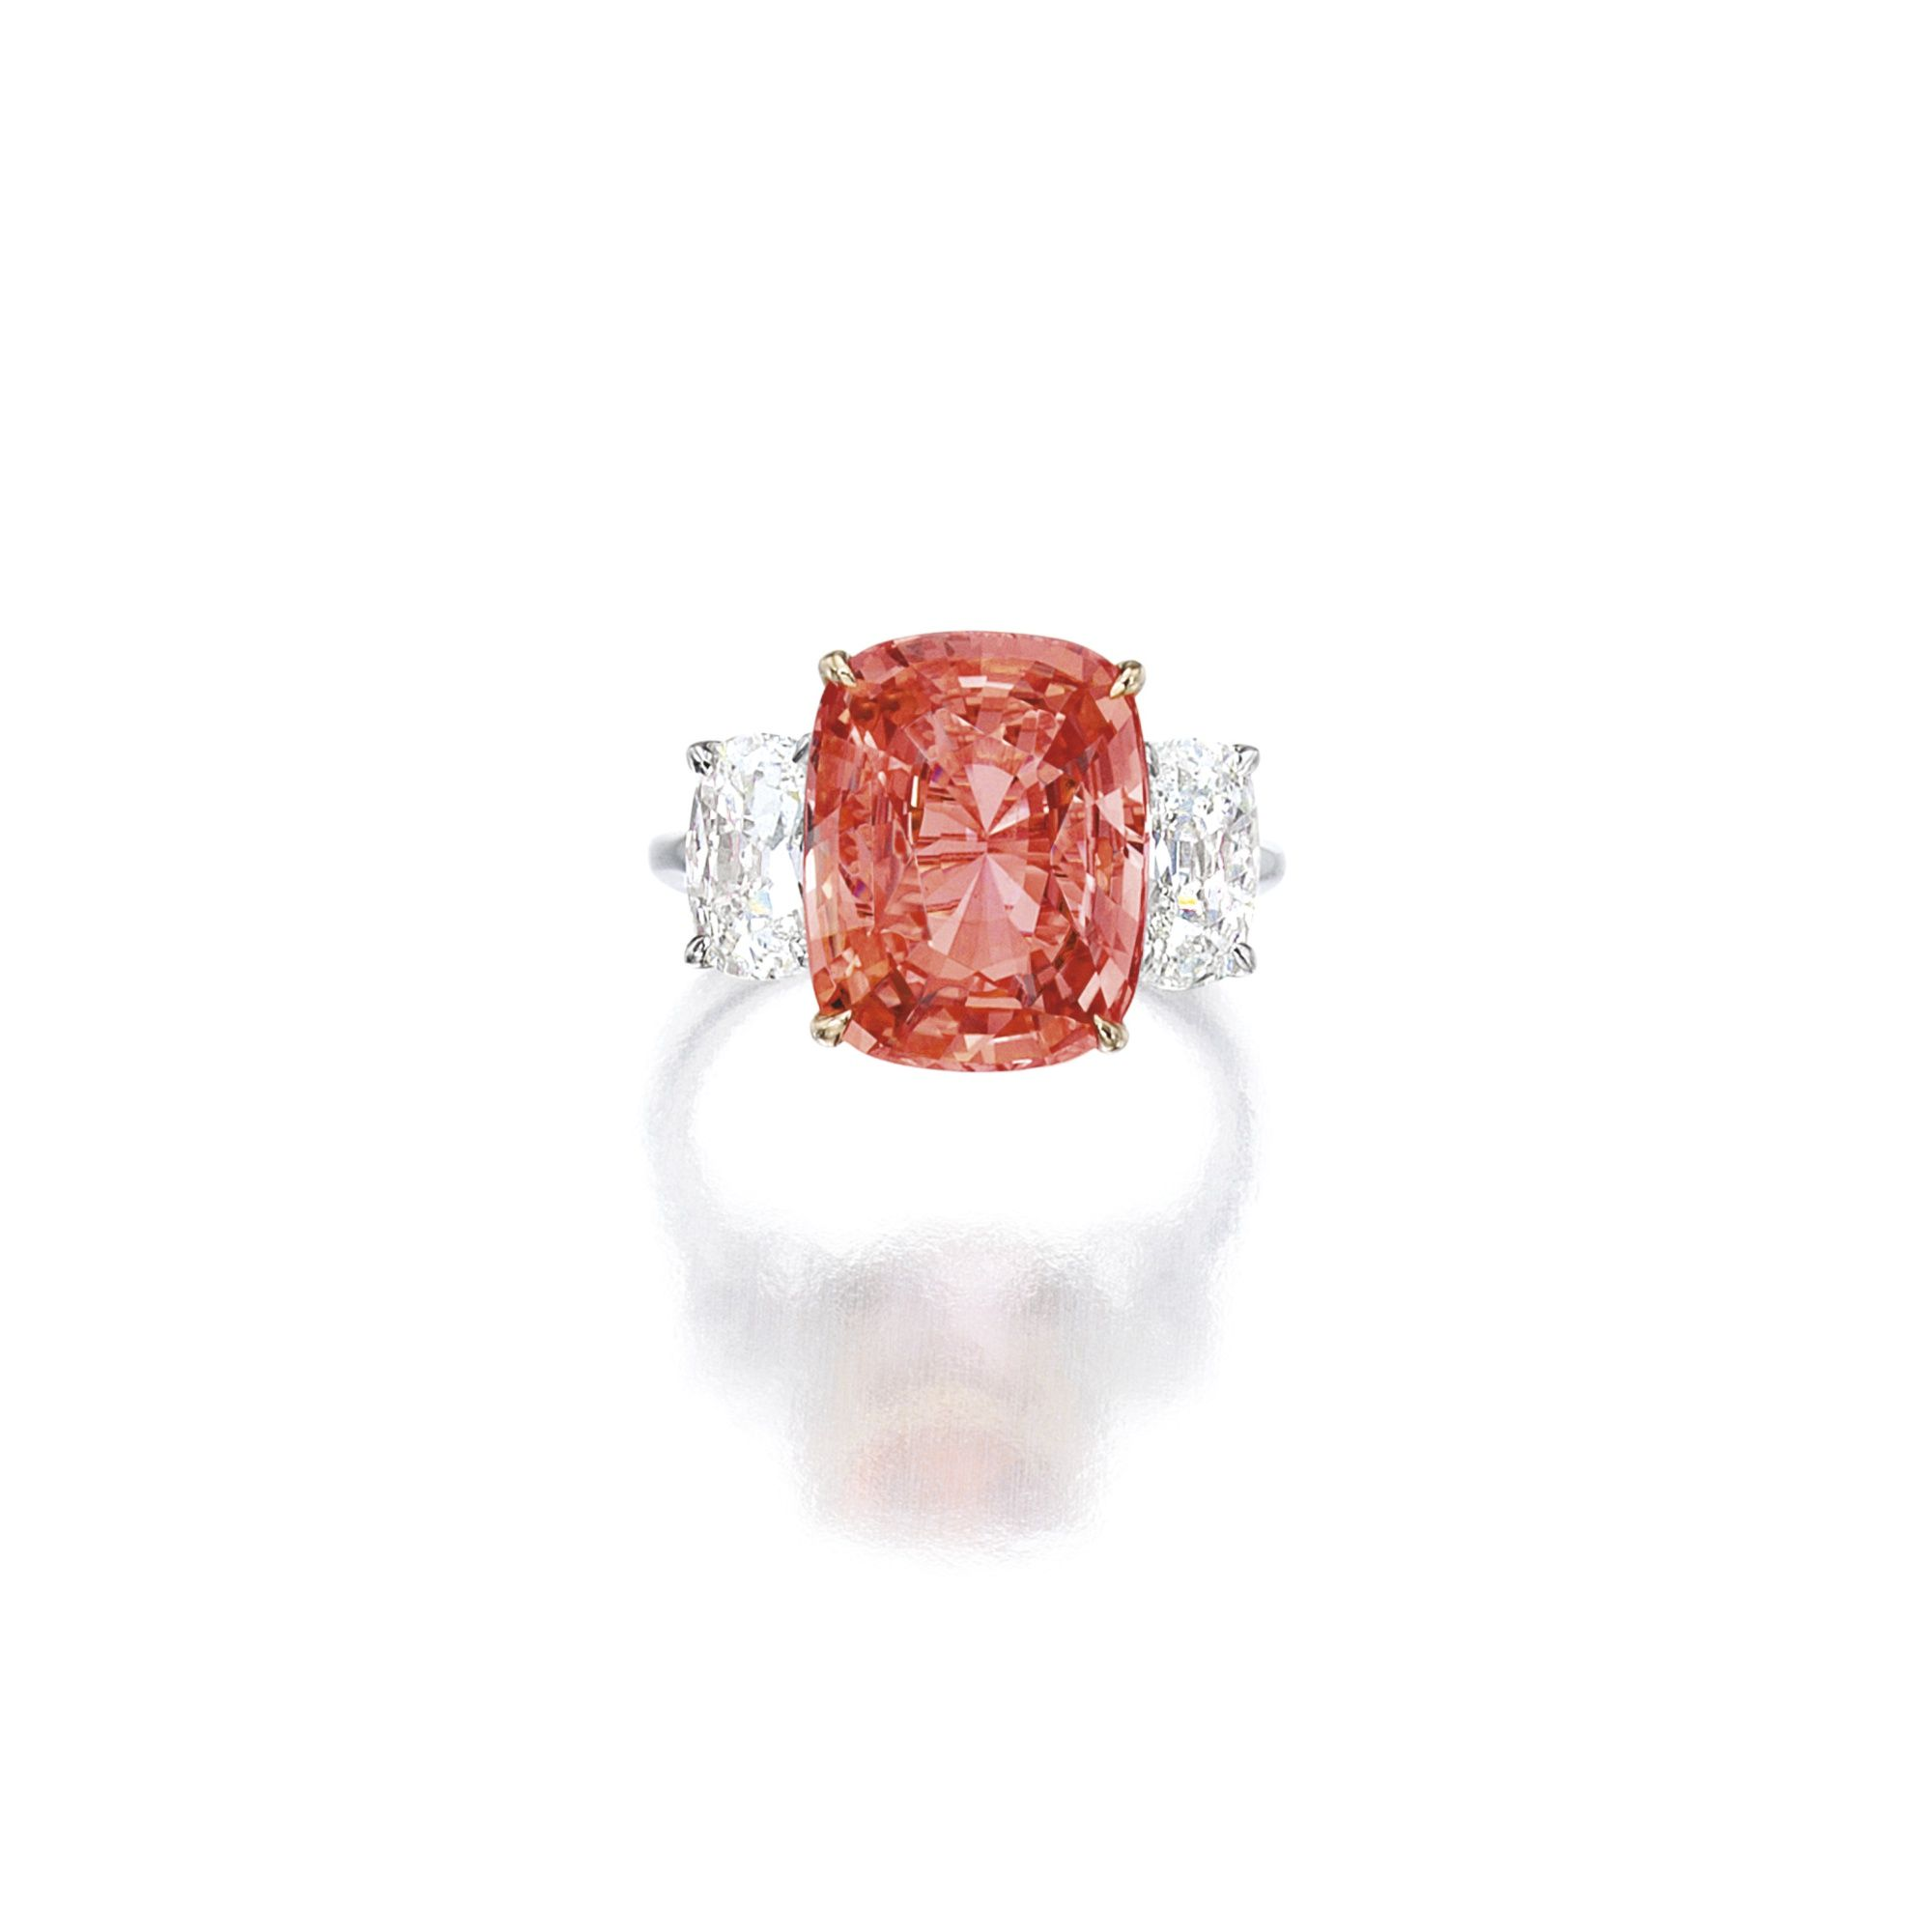 product padparadscha engagement sapphire cushion ring cut with rose solitaire in solitare rare gold earrings home